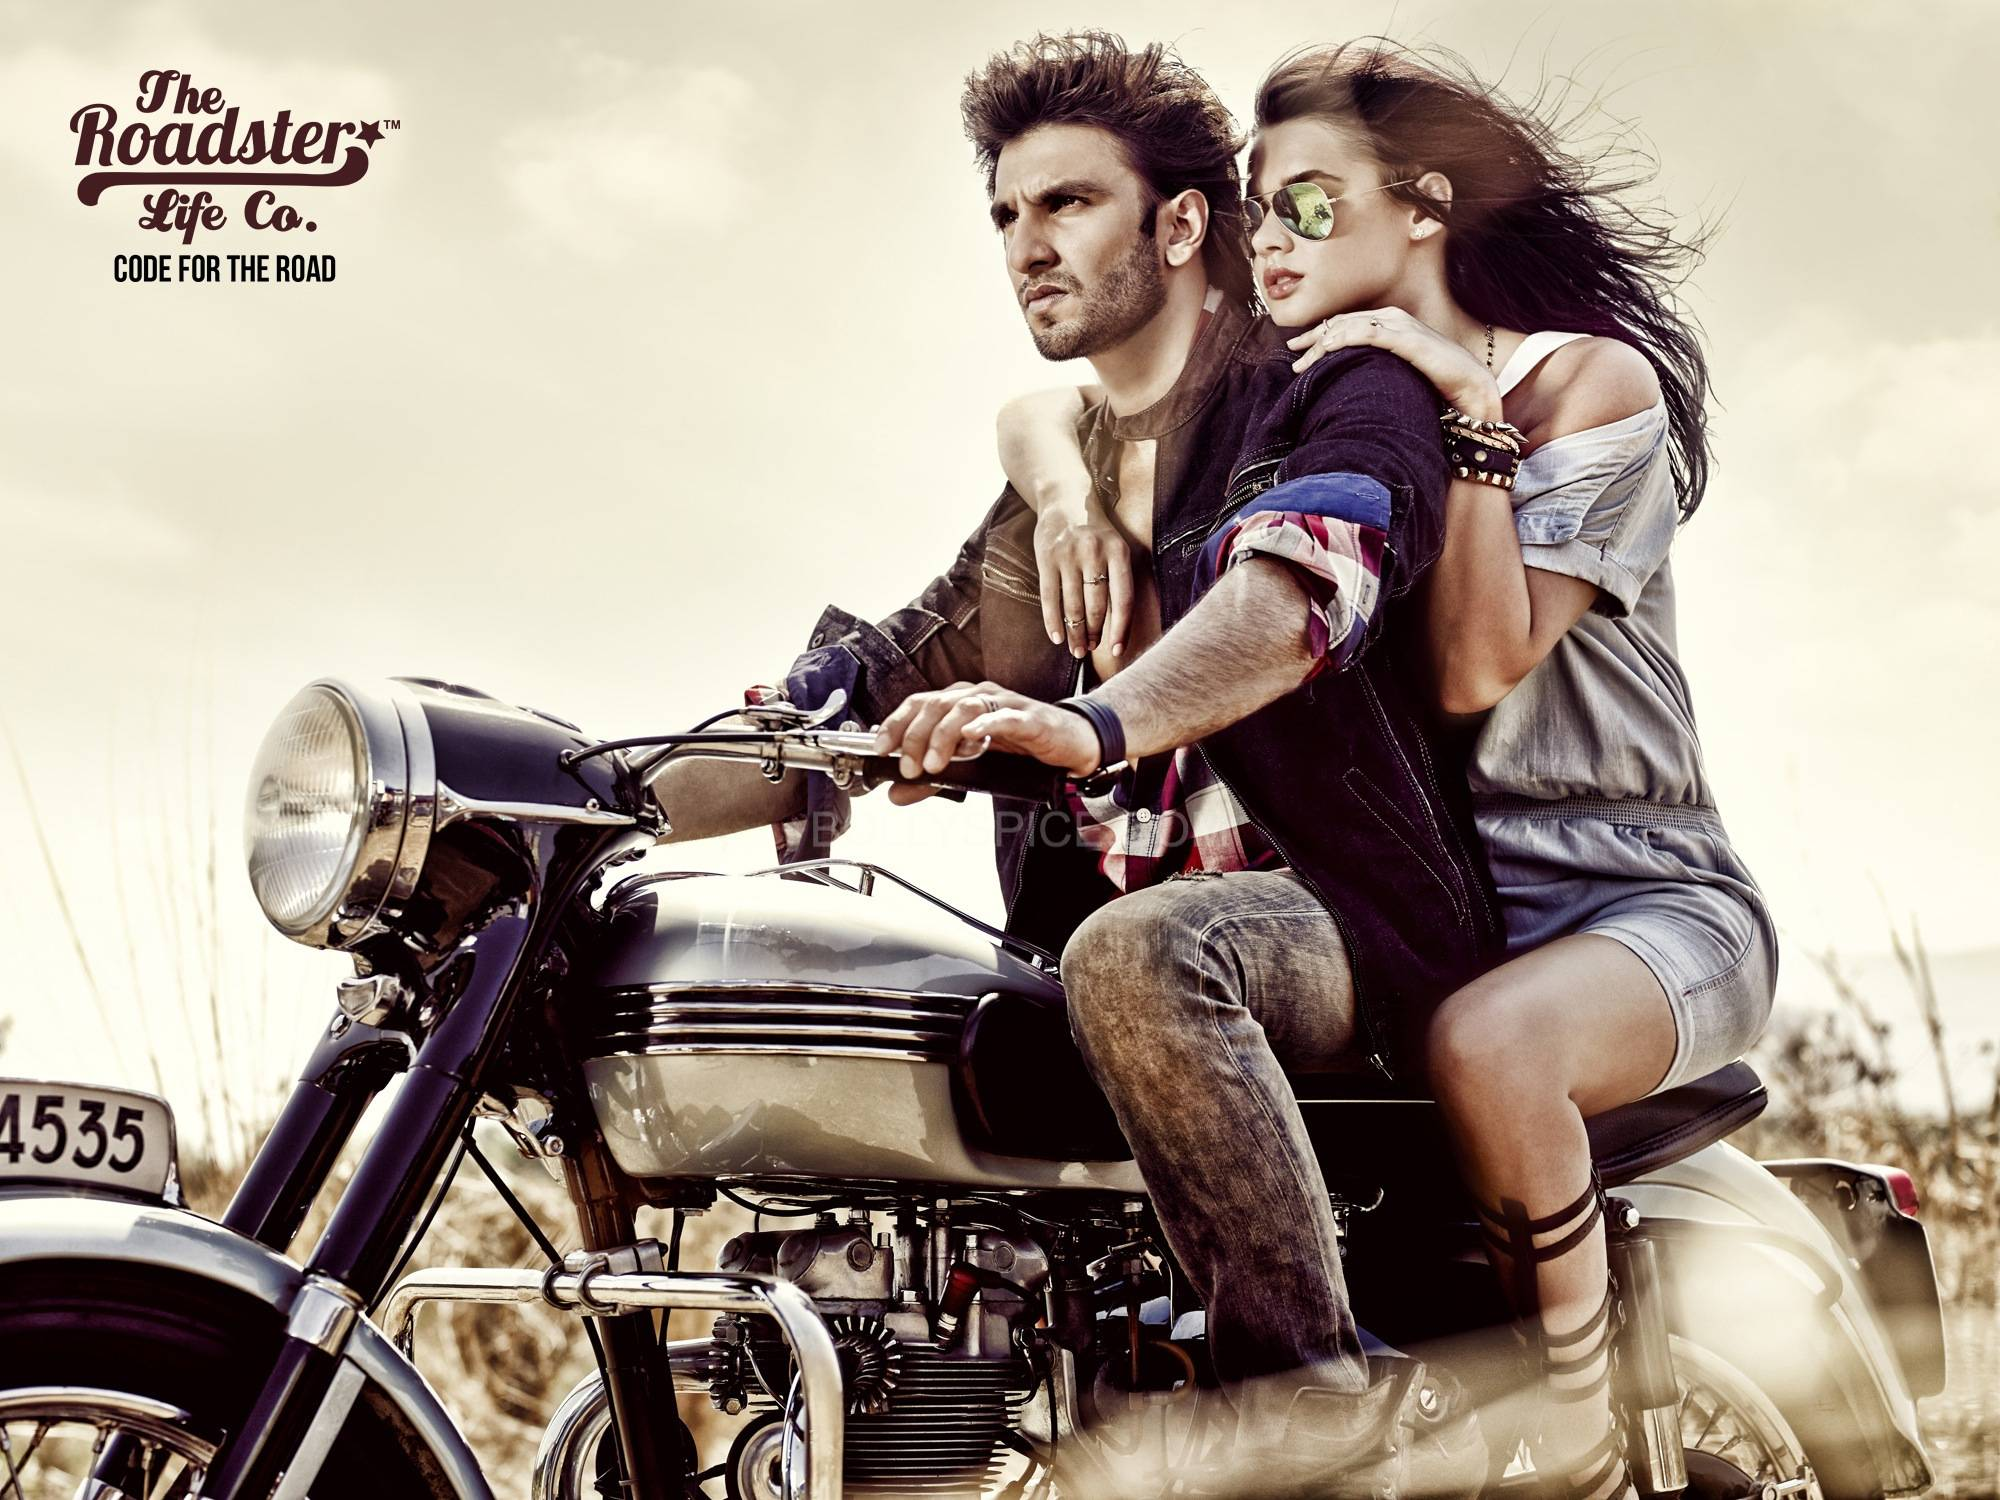 RaNVEERSINGHMYNTRA1 Myntra.com ropes In Ranveer Singh as the Brand Ambassador for Roadster